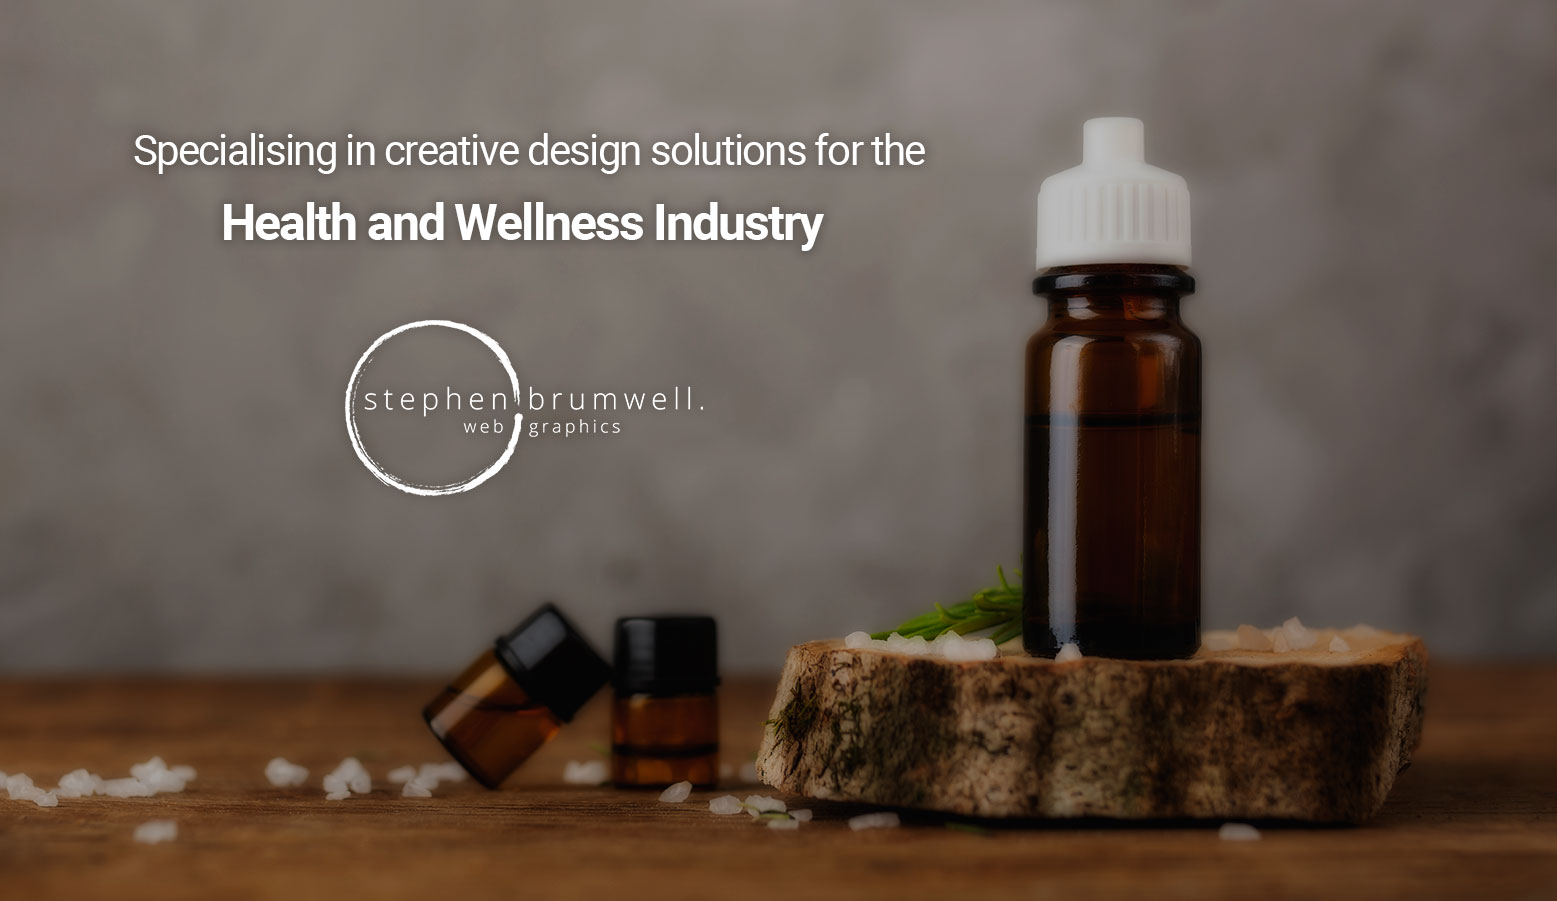 Creative design solutions for the health and wellness industry